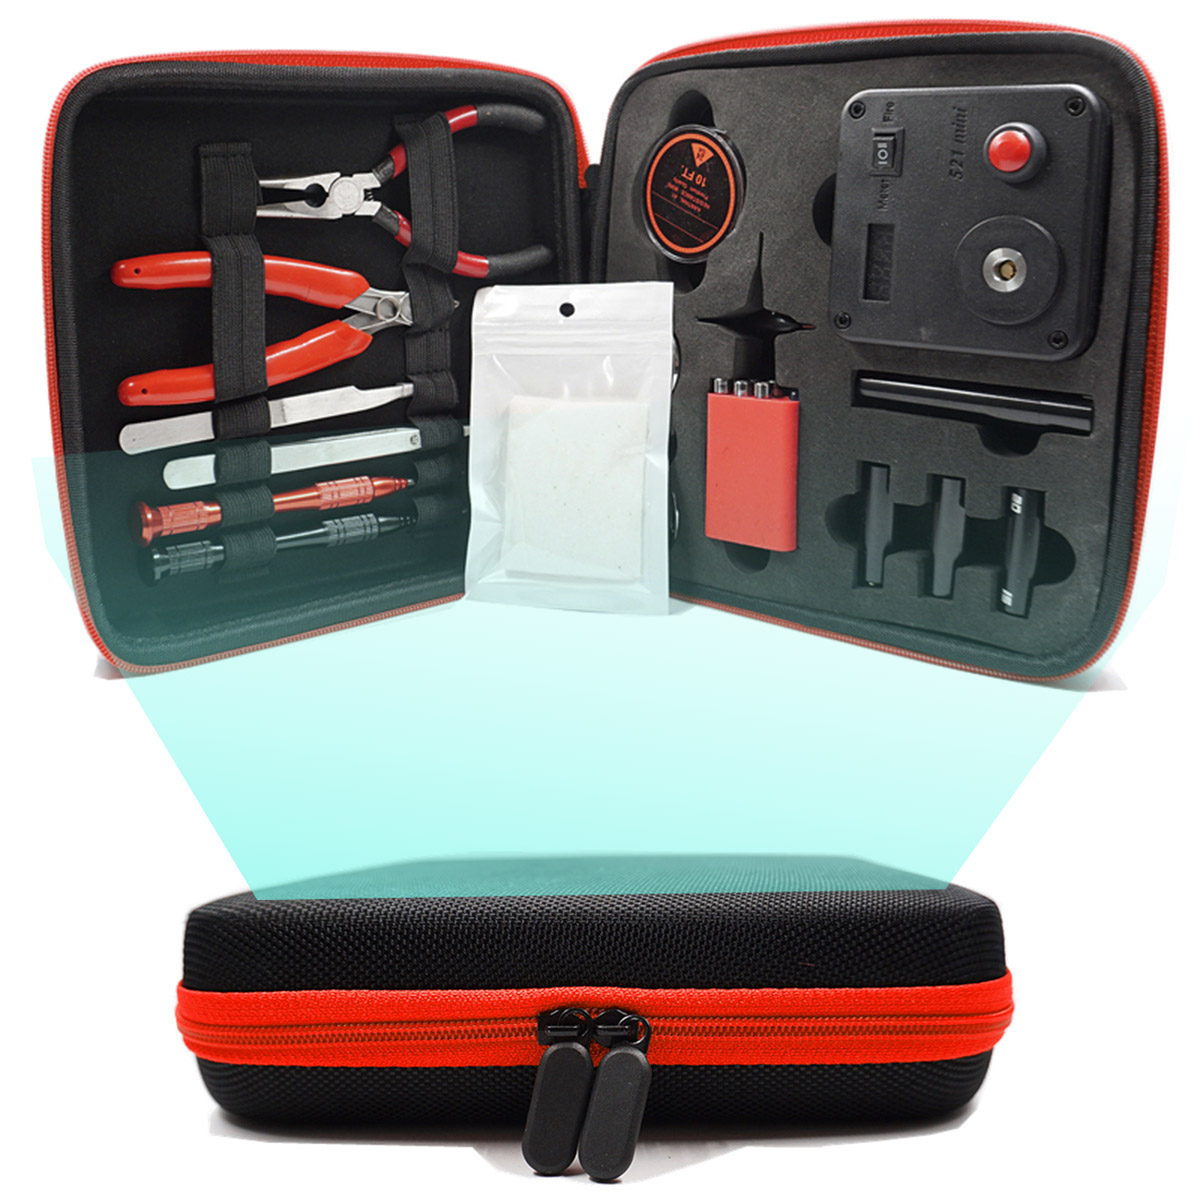 Household Tool Set Update Coil Master V3 DIY Kit All-in-One CoilMaster V3+ Electronic Cigarette RDA Atomizer coil Accessories original geekvape 521 master kit v3 all in one kit with the most functional tools and accessories e cig vape 521 master kit v3